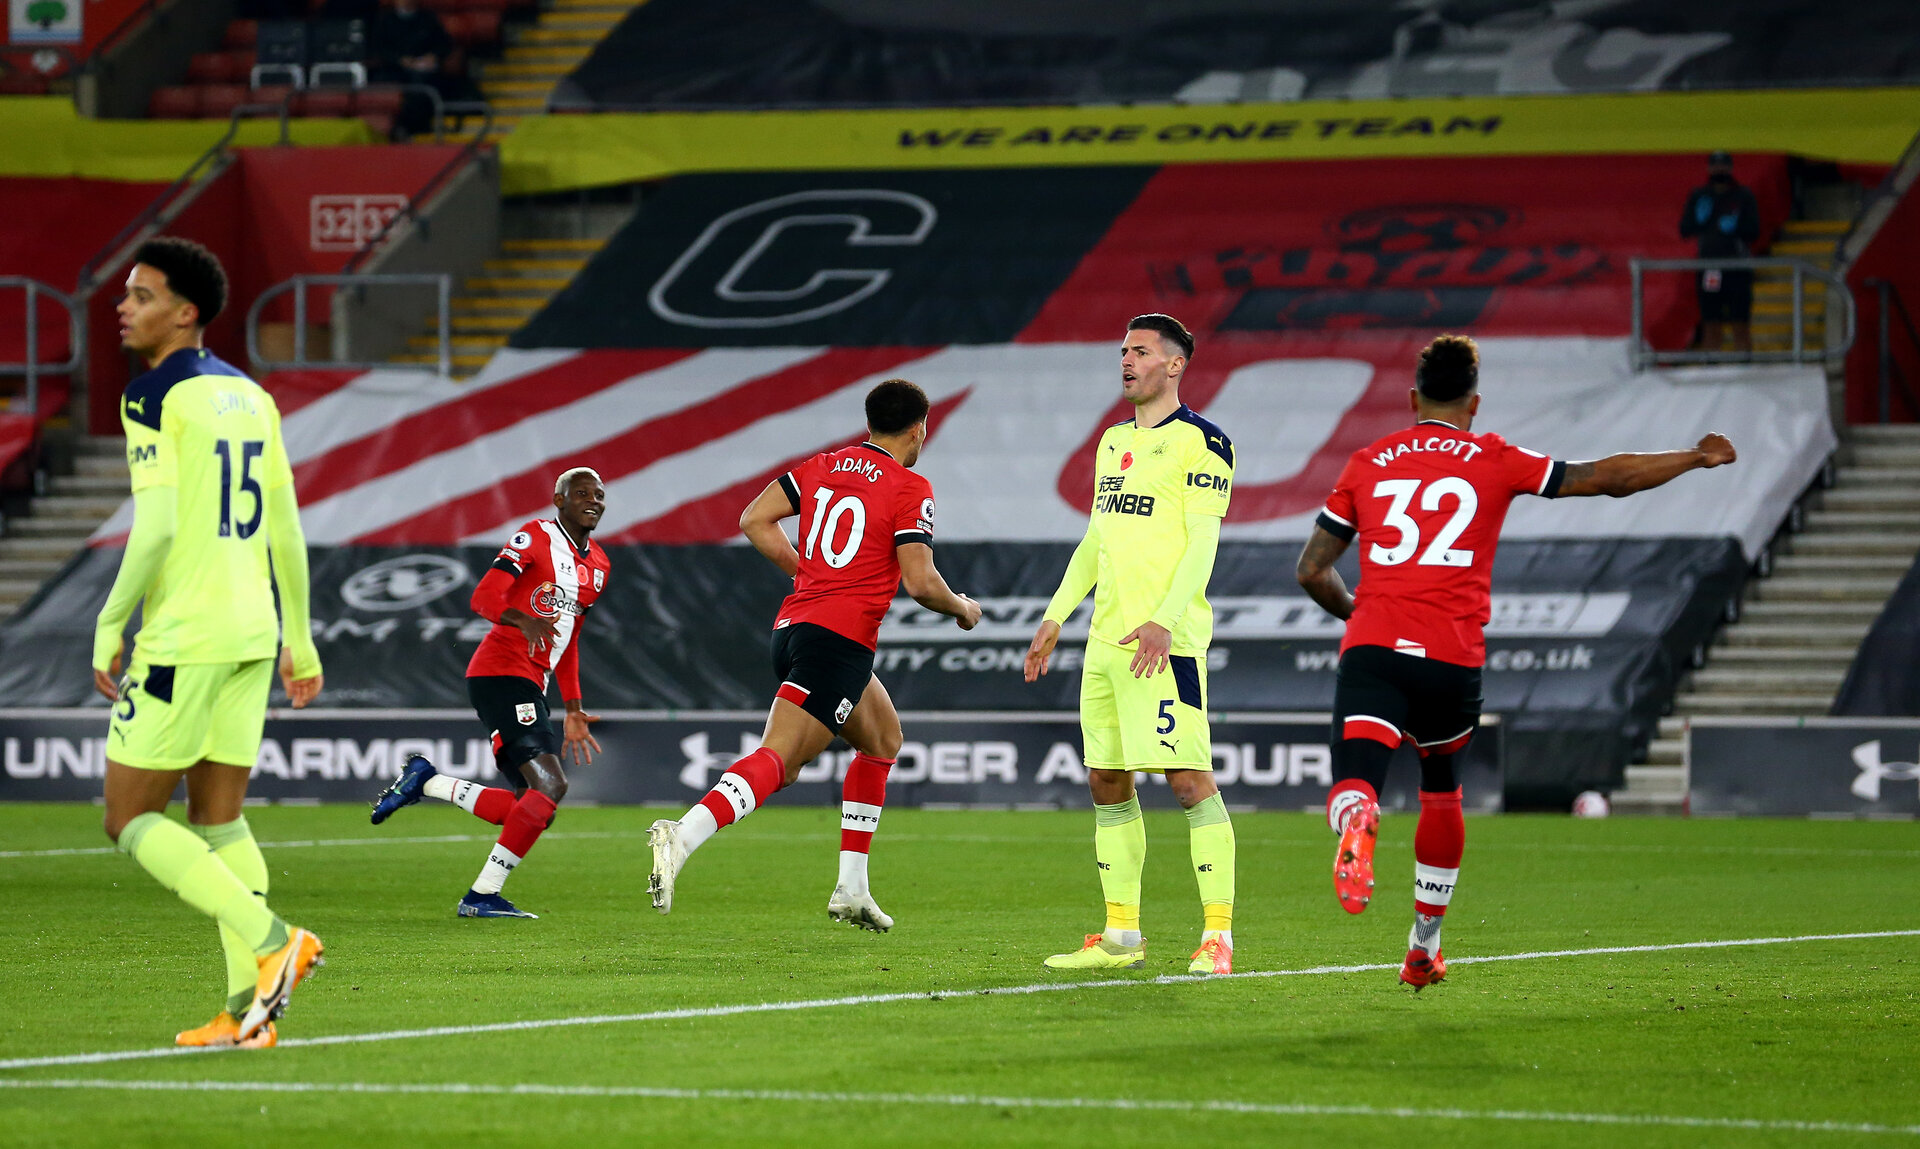 SOUTHAMPTON, ENGLAND - NOVEMBER 06: Che Adams(centre) of Southampton celebrates after opening the scoring during the Premier League match between Southampton and Newcastle United at St Mary's Stadium on November 06, 2020 in Southampton, England. Sporting stadiums around the UK remain under strict restrictions due to the Coronavirus Pandemic as Government social distancing laws prohibit fans inside venues resulting in games being played behind closed doors. (Photo by Matt Watson/Southampton FC via Getty Images)